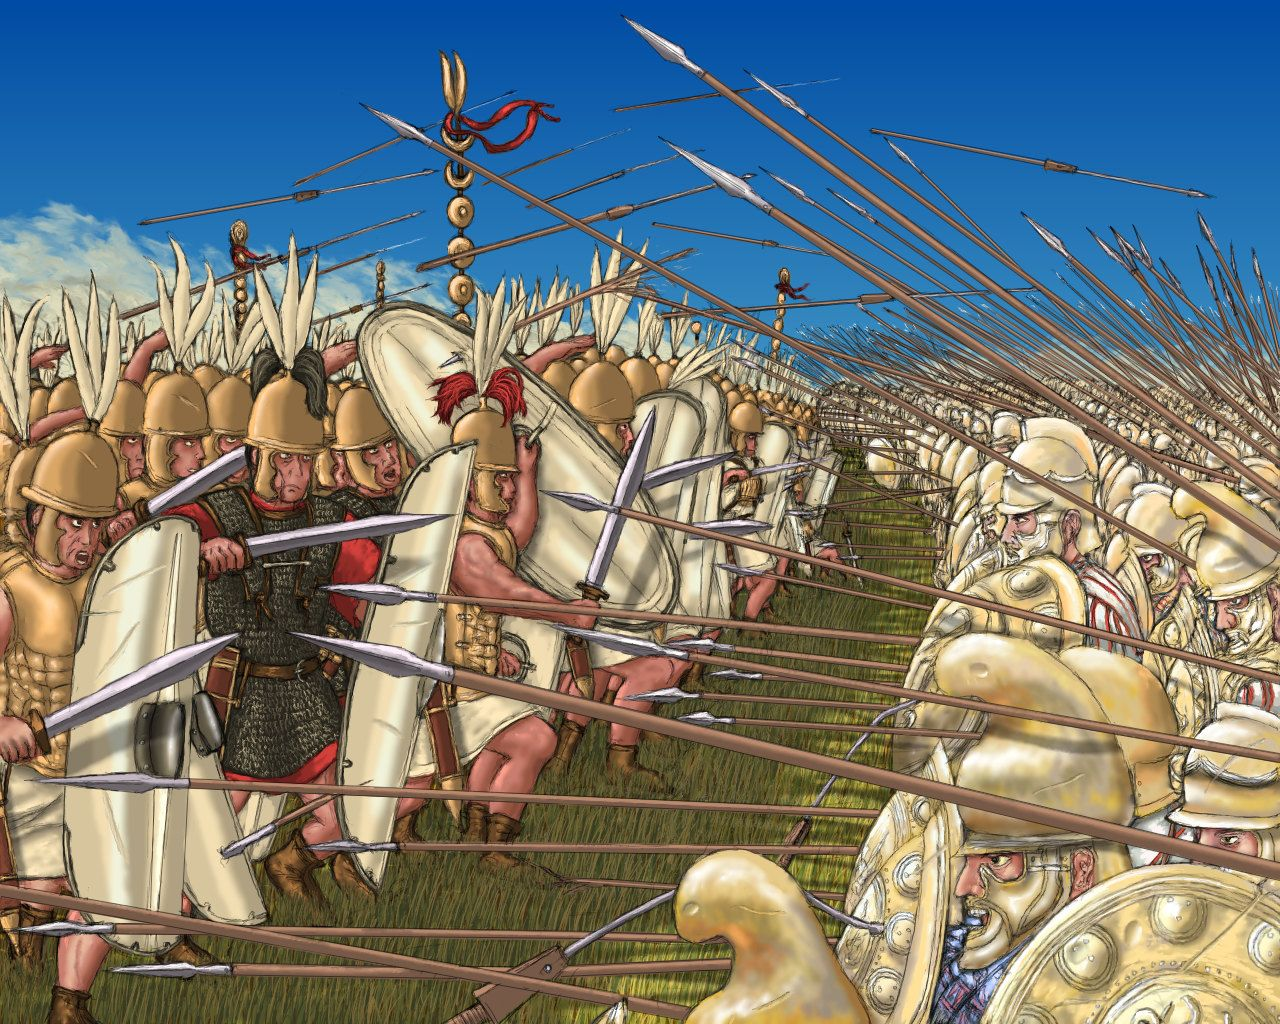 roman legion and greek phalanx Start studying roman republic chapter 12 section 1 learn vocabulary, terms, and more with flashcards, games, and other study tools.